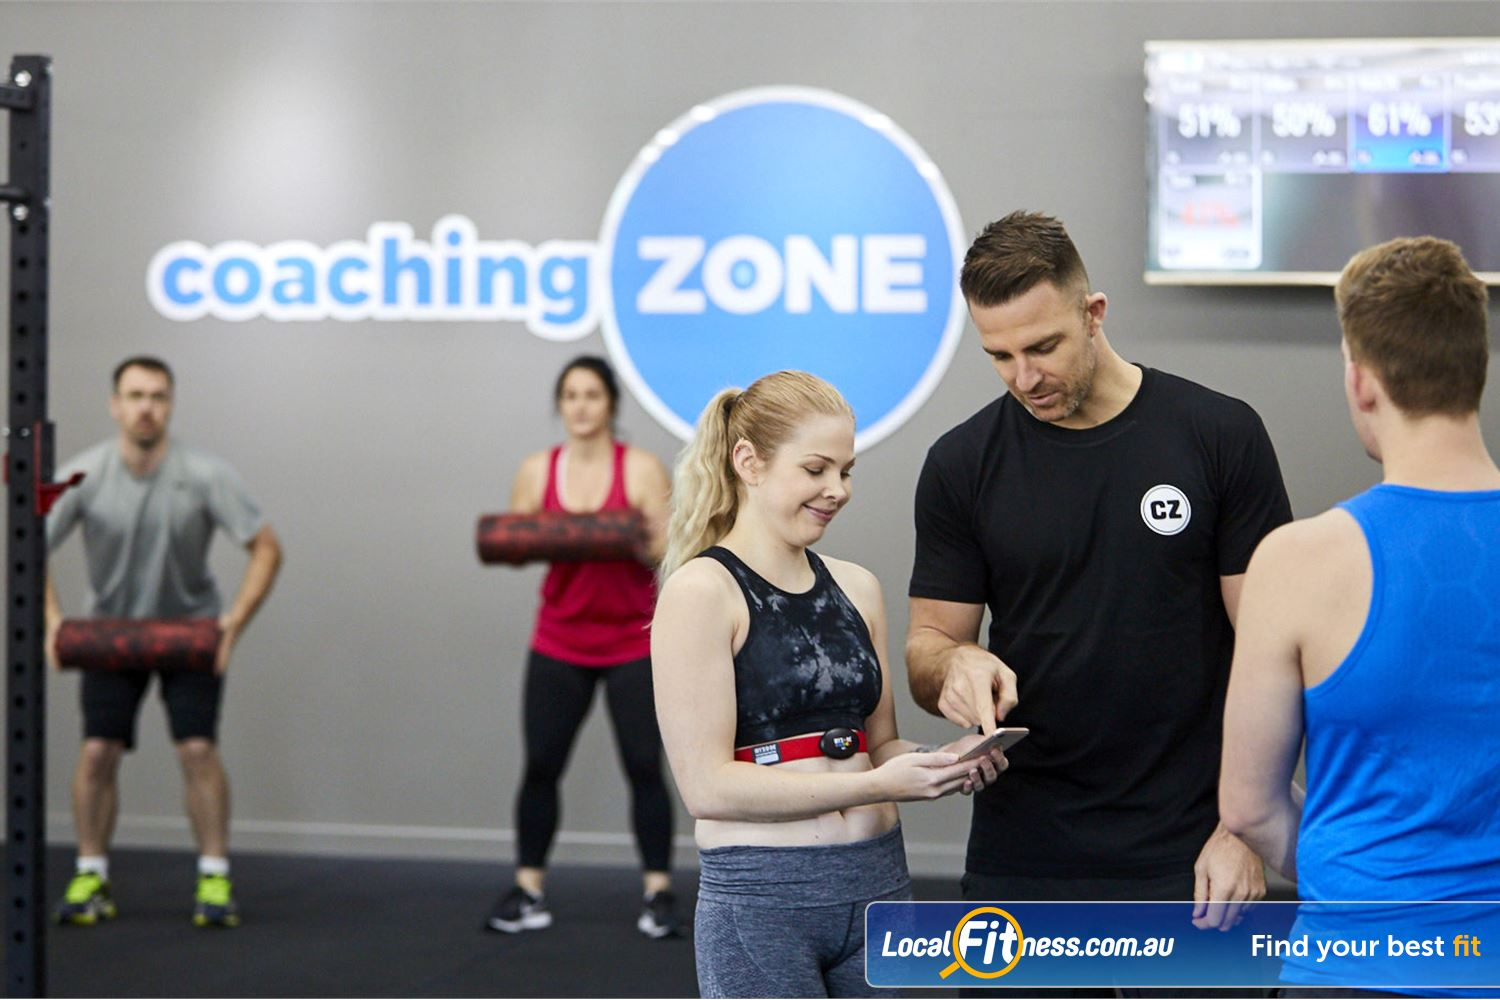 Coaching Zone Near Knoxfield High tech member experience combines high tech and functional training.